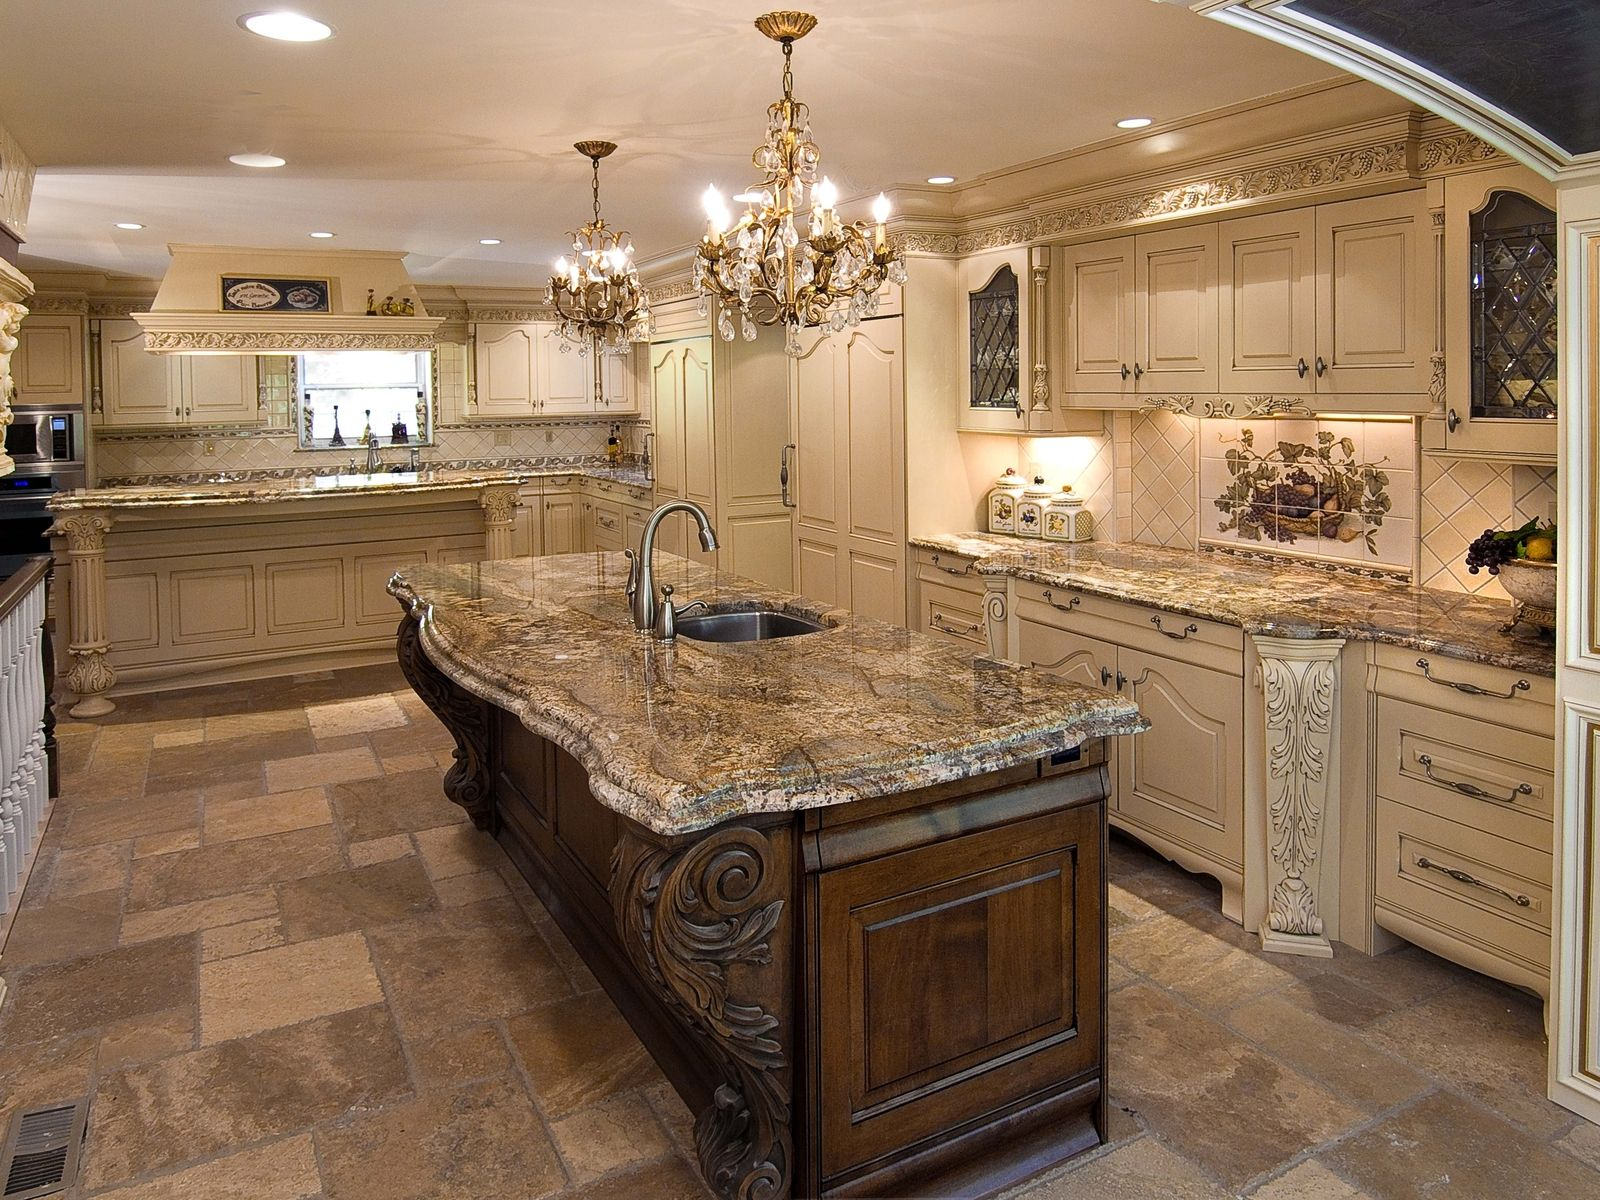 Ornate kitchen cabinets custom made ornate kitchen by for Custom kitchen remodeling